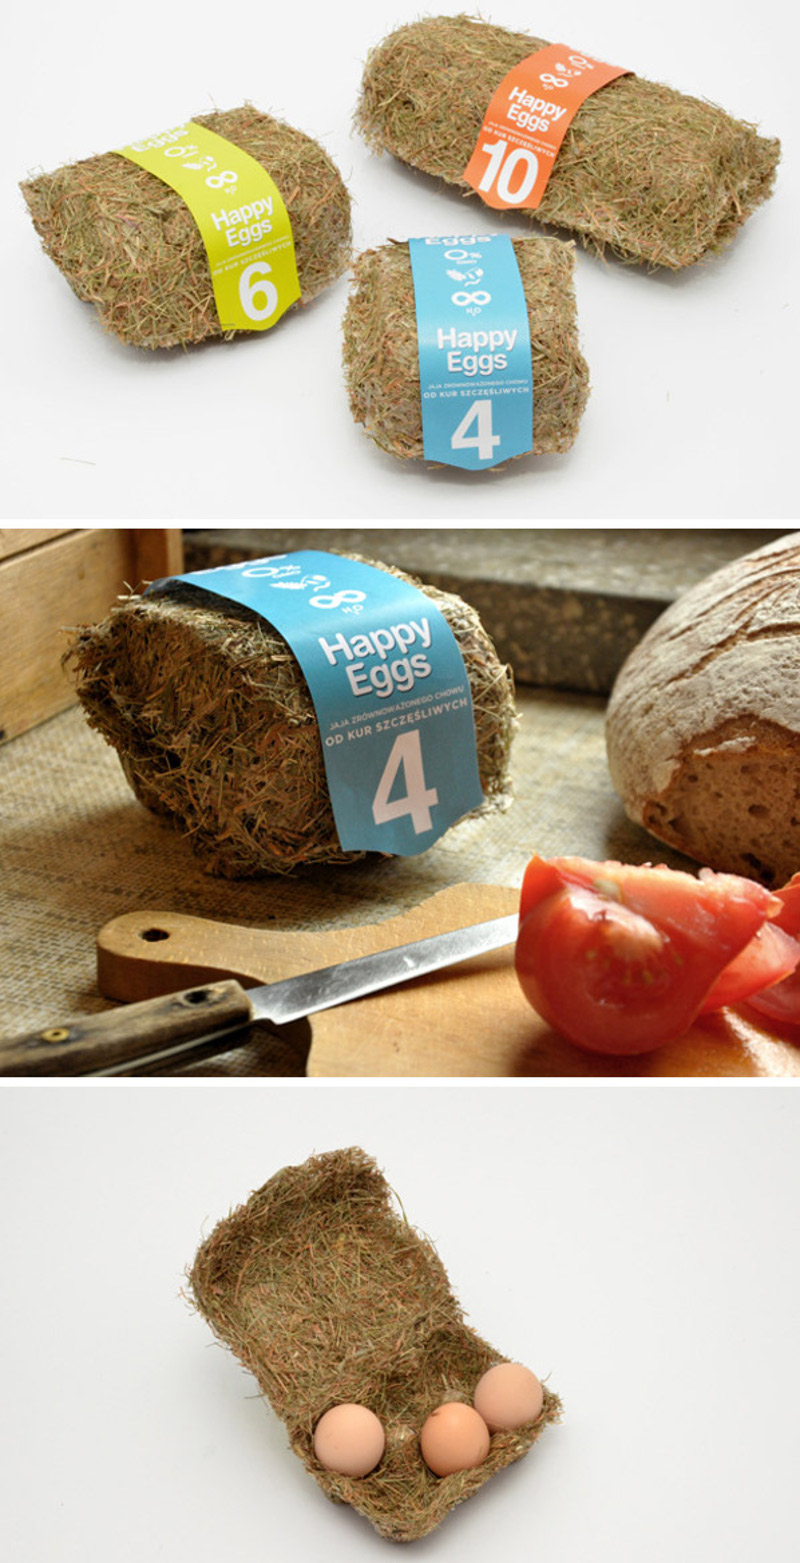 Eco-friendly Happy Eggs Packaging by Maja Szczypek